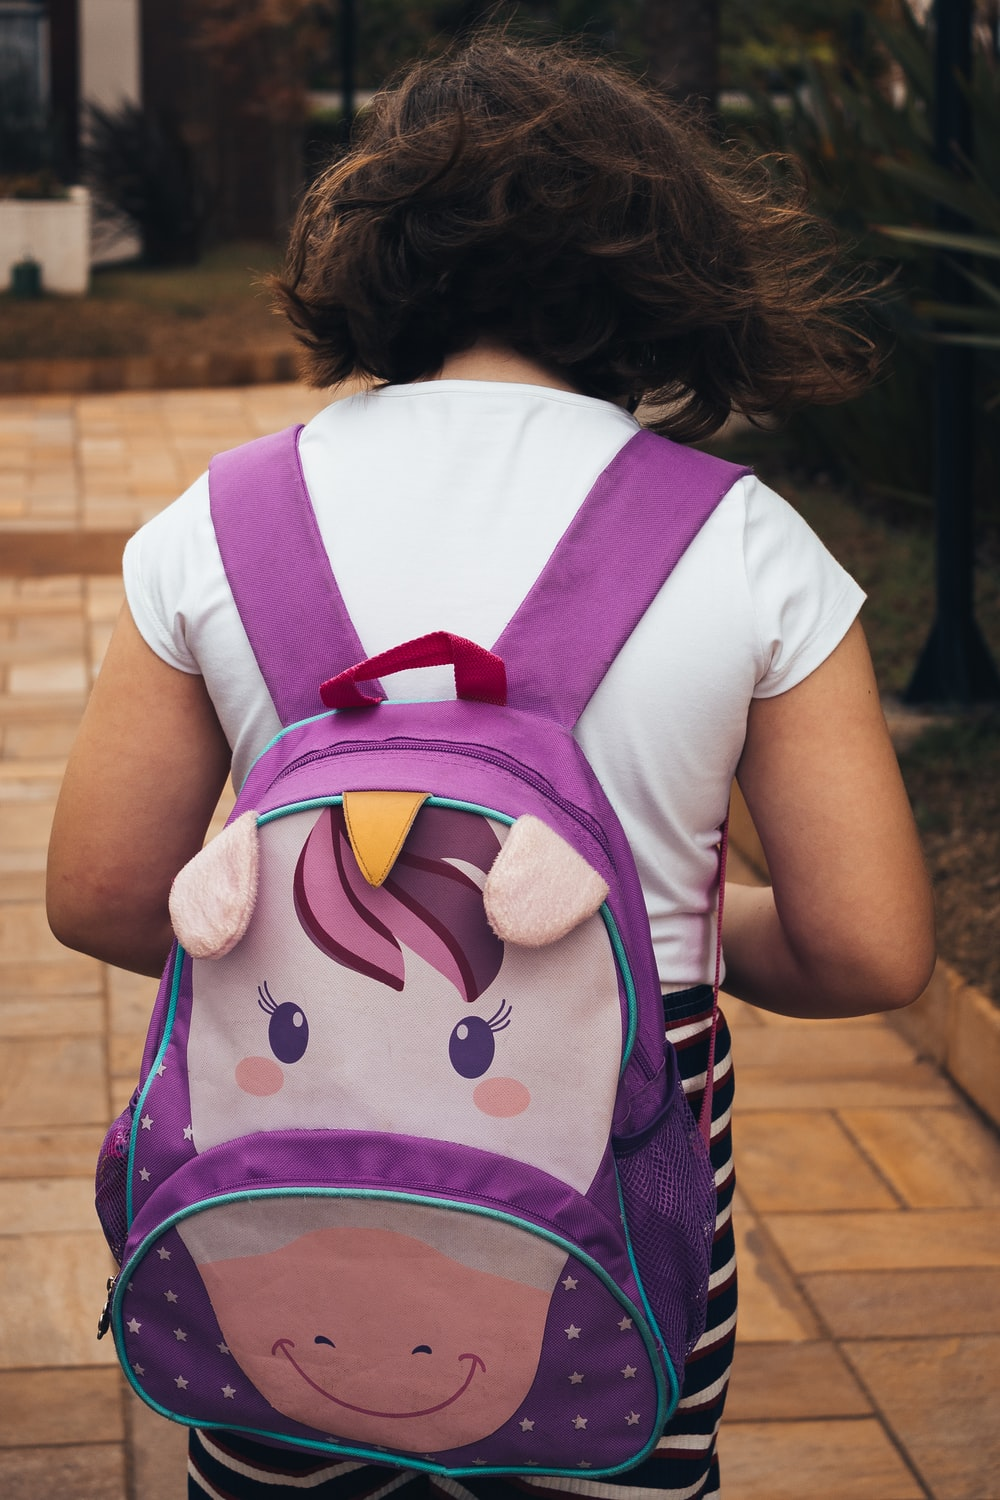 girl in white shirt carrying purple backpack